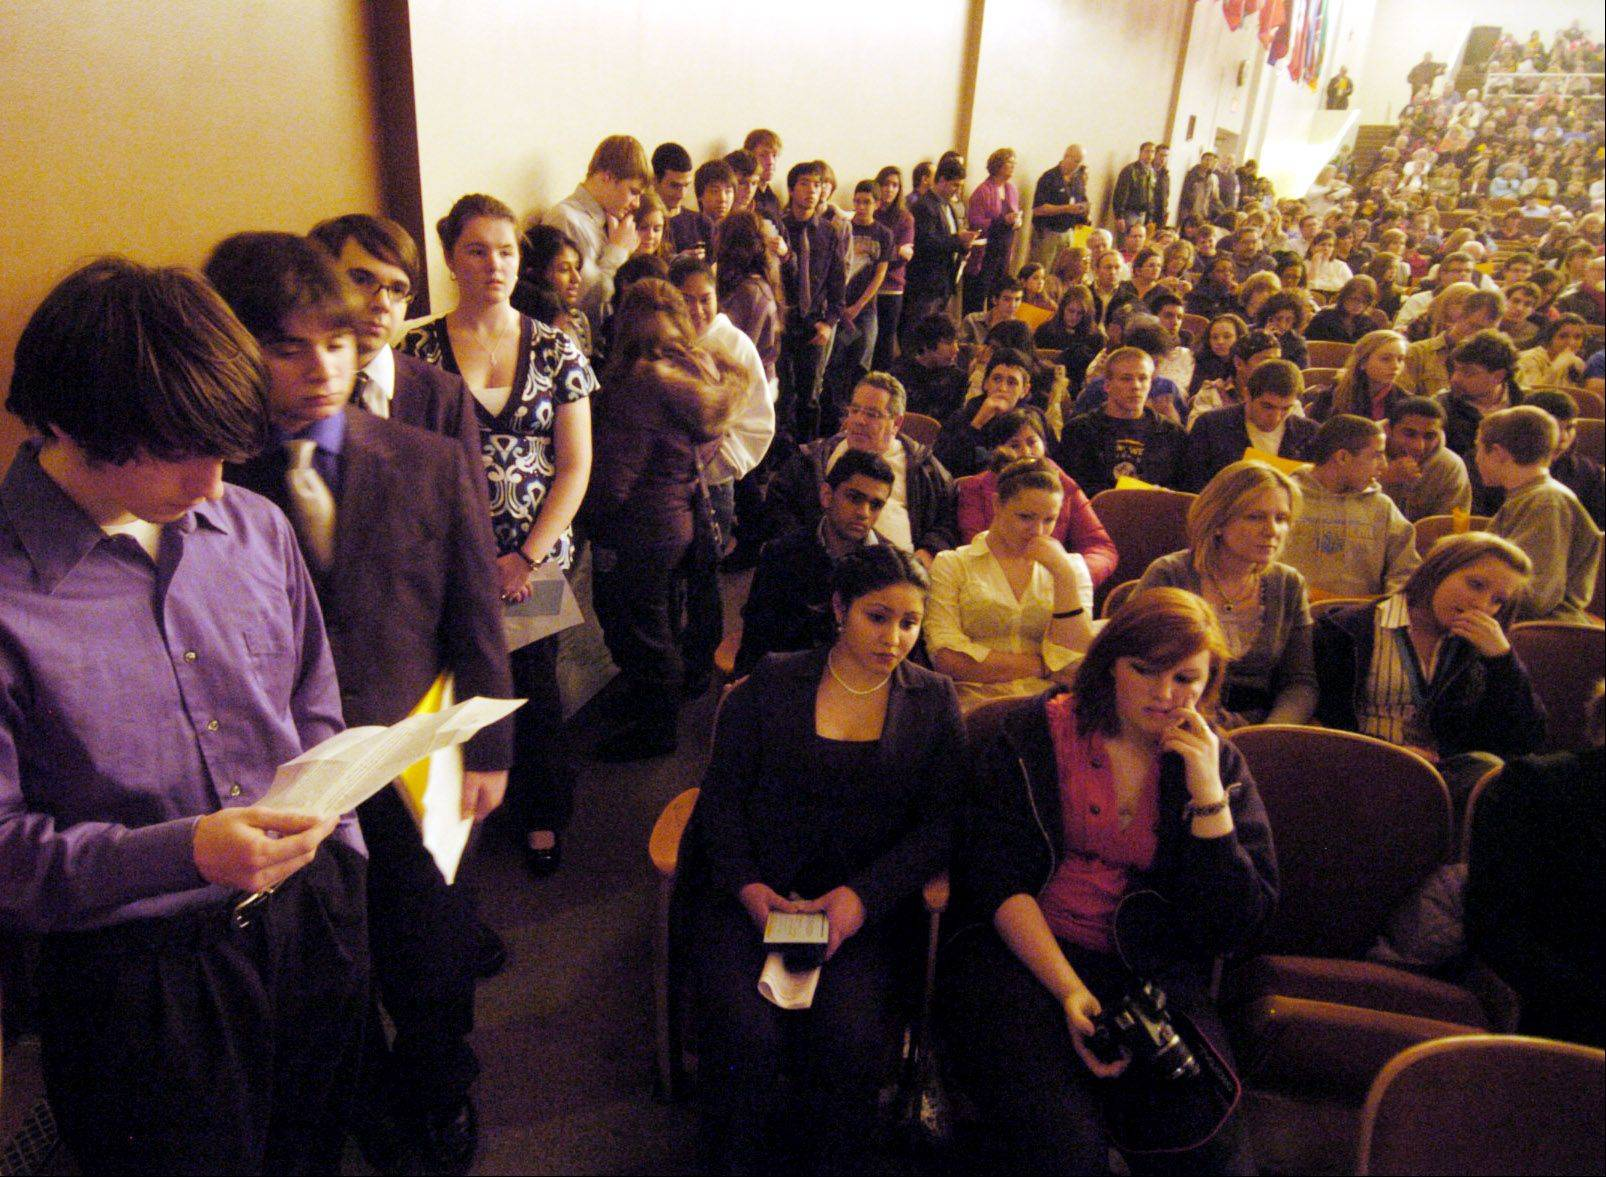 The Maine Township High School District 207 school board Friday approved a new teachers' contract without any controversy. It was a stark contrast from this 2010 public hearing where crowds gathered to protest the district's proposed budget cuts and layoffs.